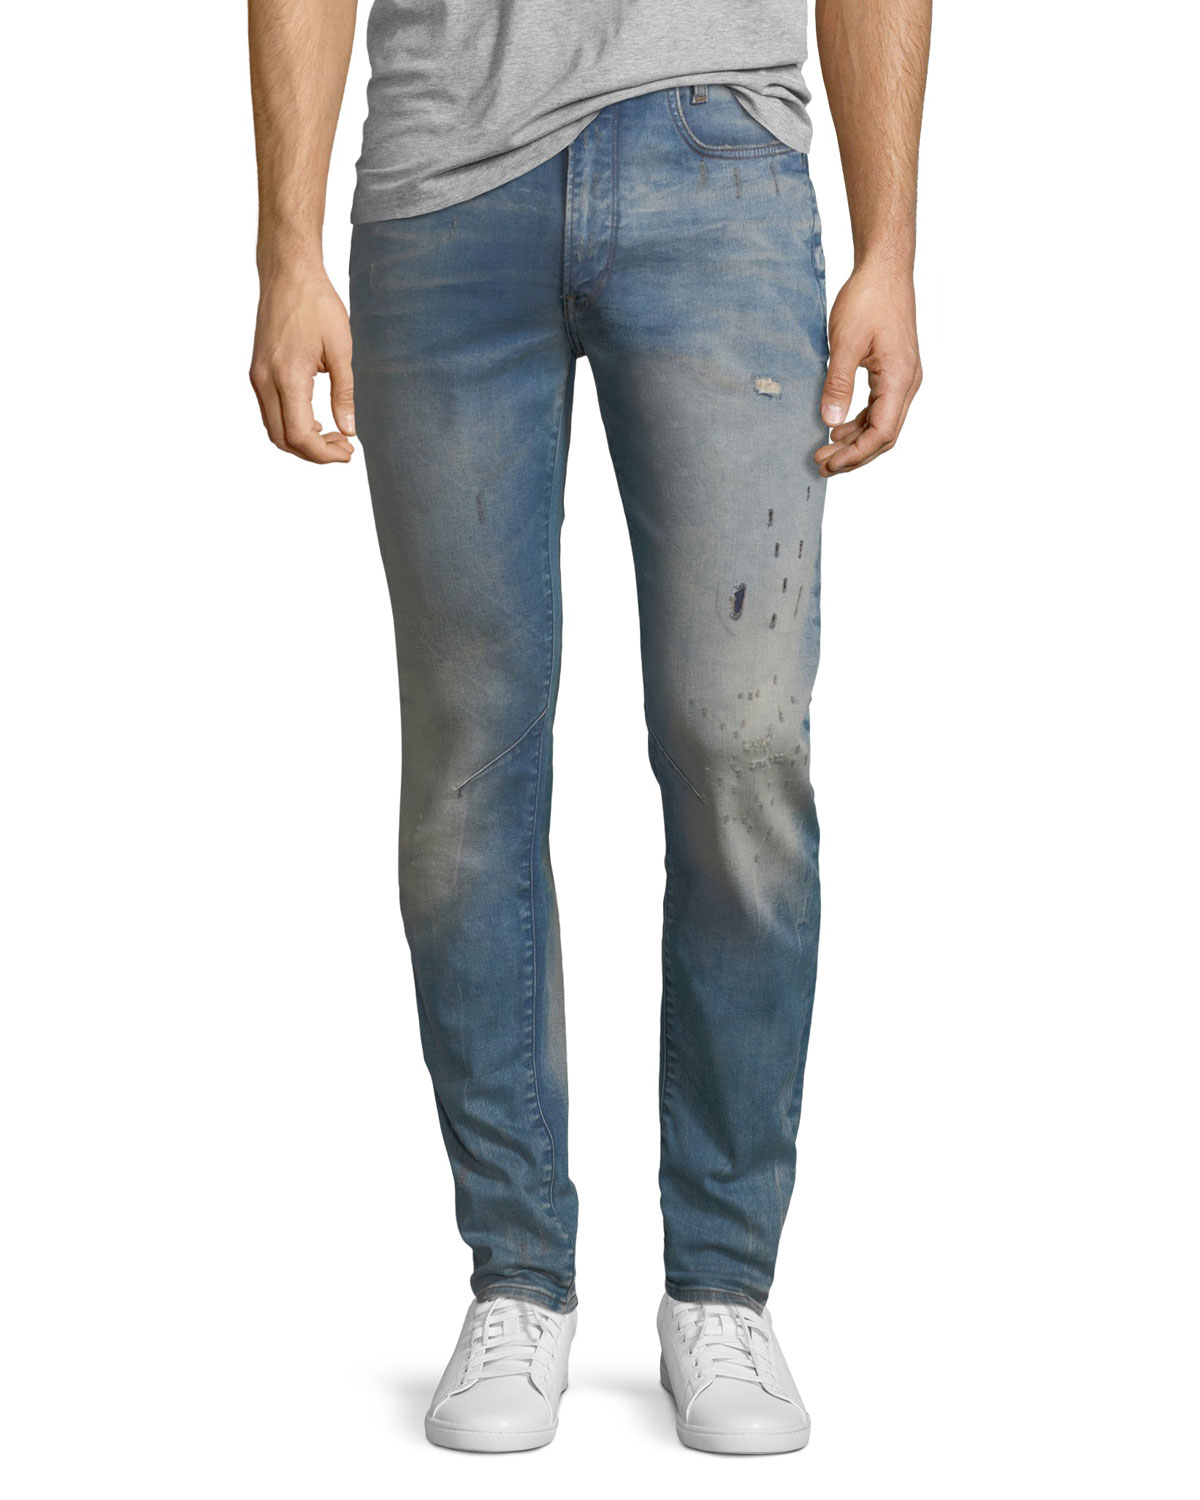 724d196d1be G-Star D-Staq 3D Super Slim Jeans in Light Aged Restored | Neiman Marcus